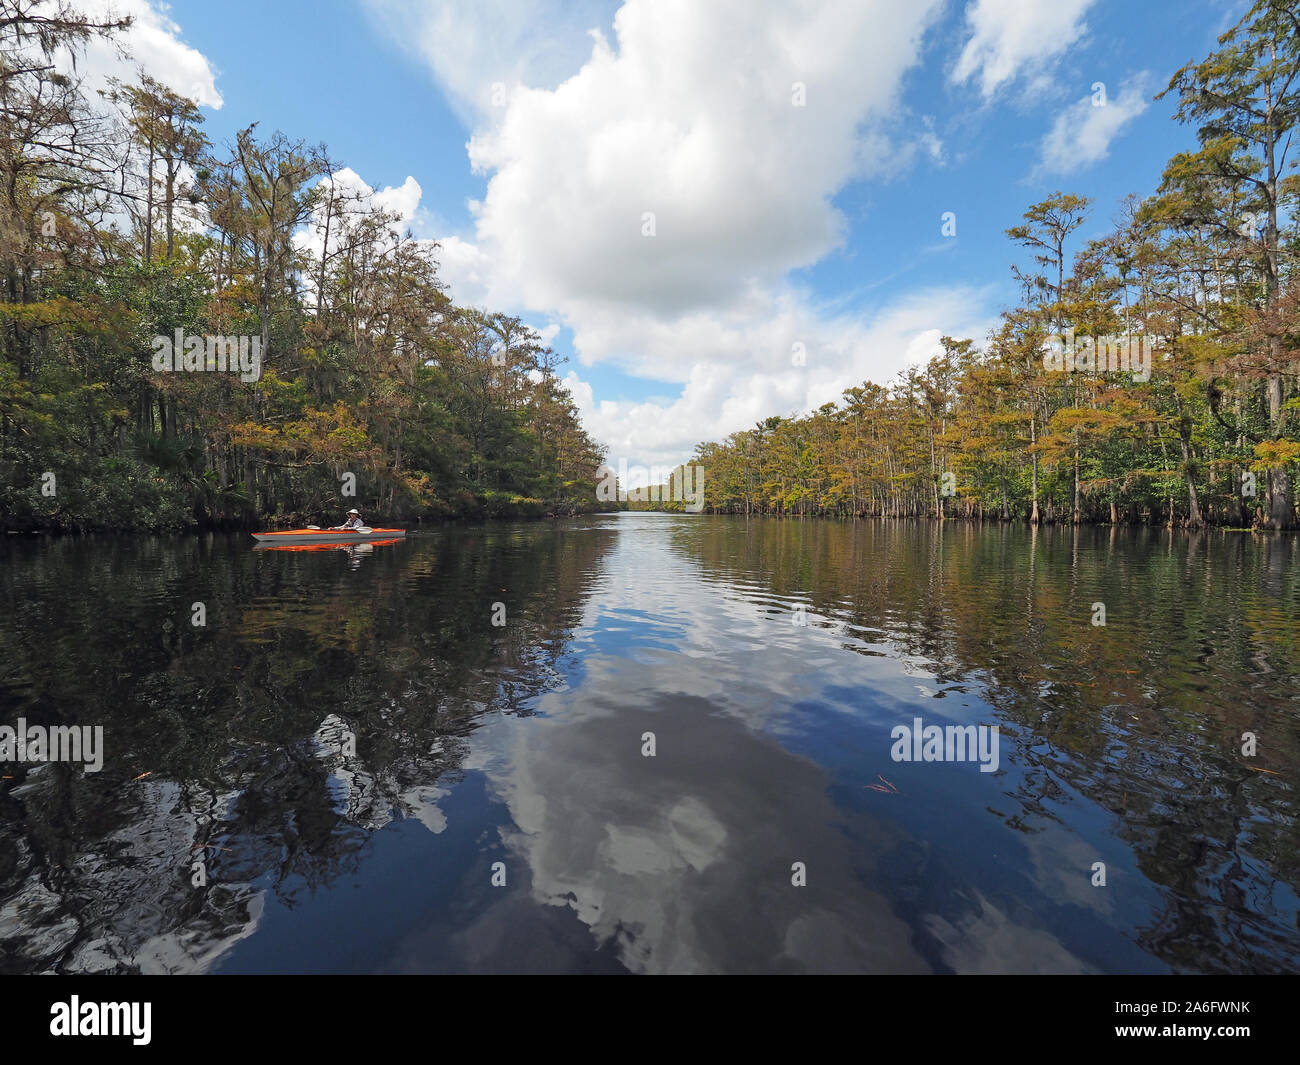 Fisheating Creek, Florida - September 22, 2018: Woman kayaks on calm water amidst reflected clouds and bald cypress trees in autumn. Stock Photo